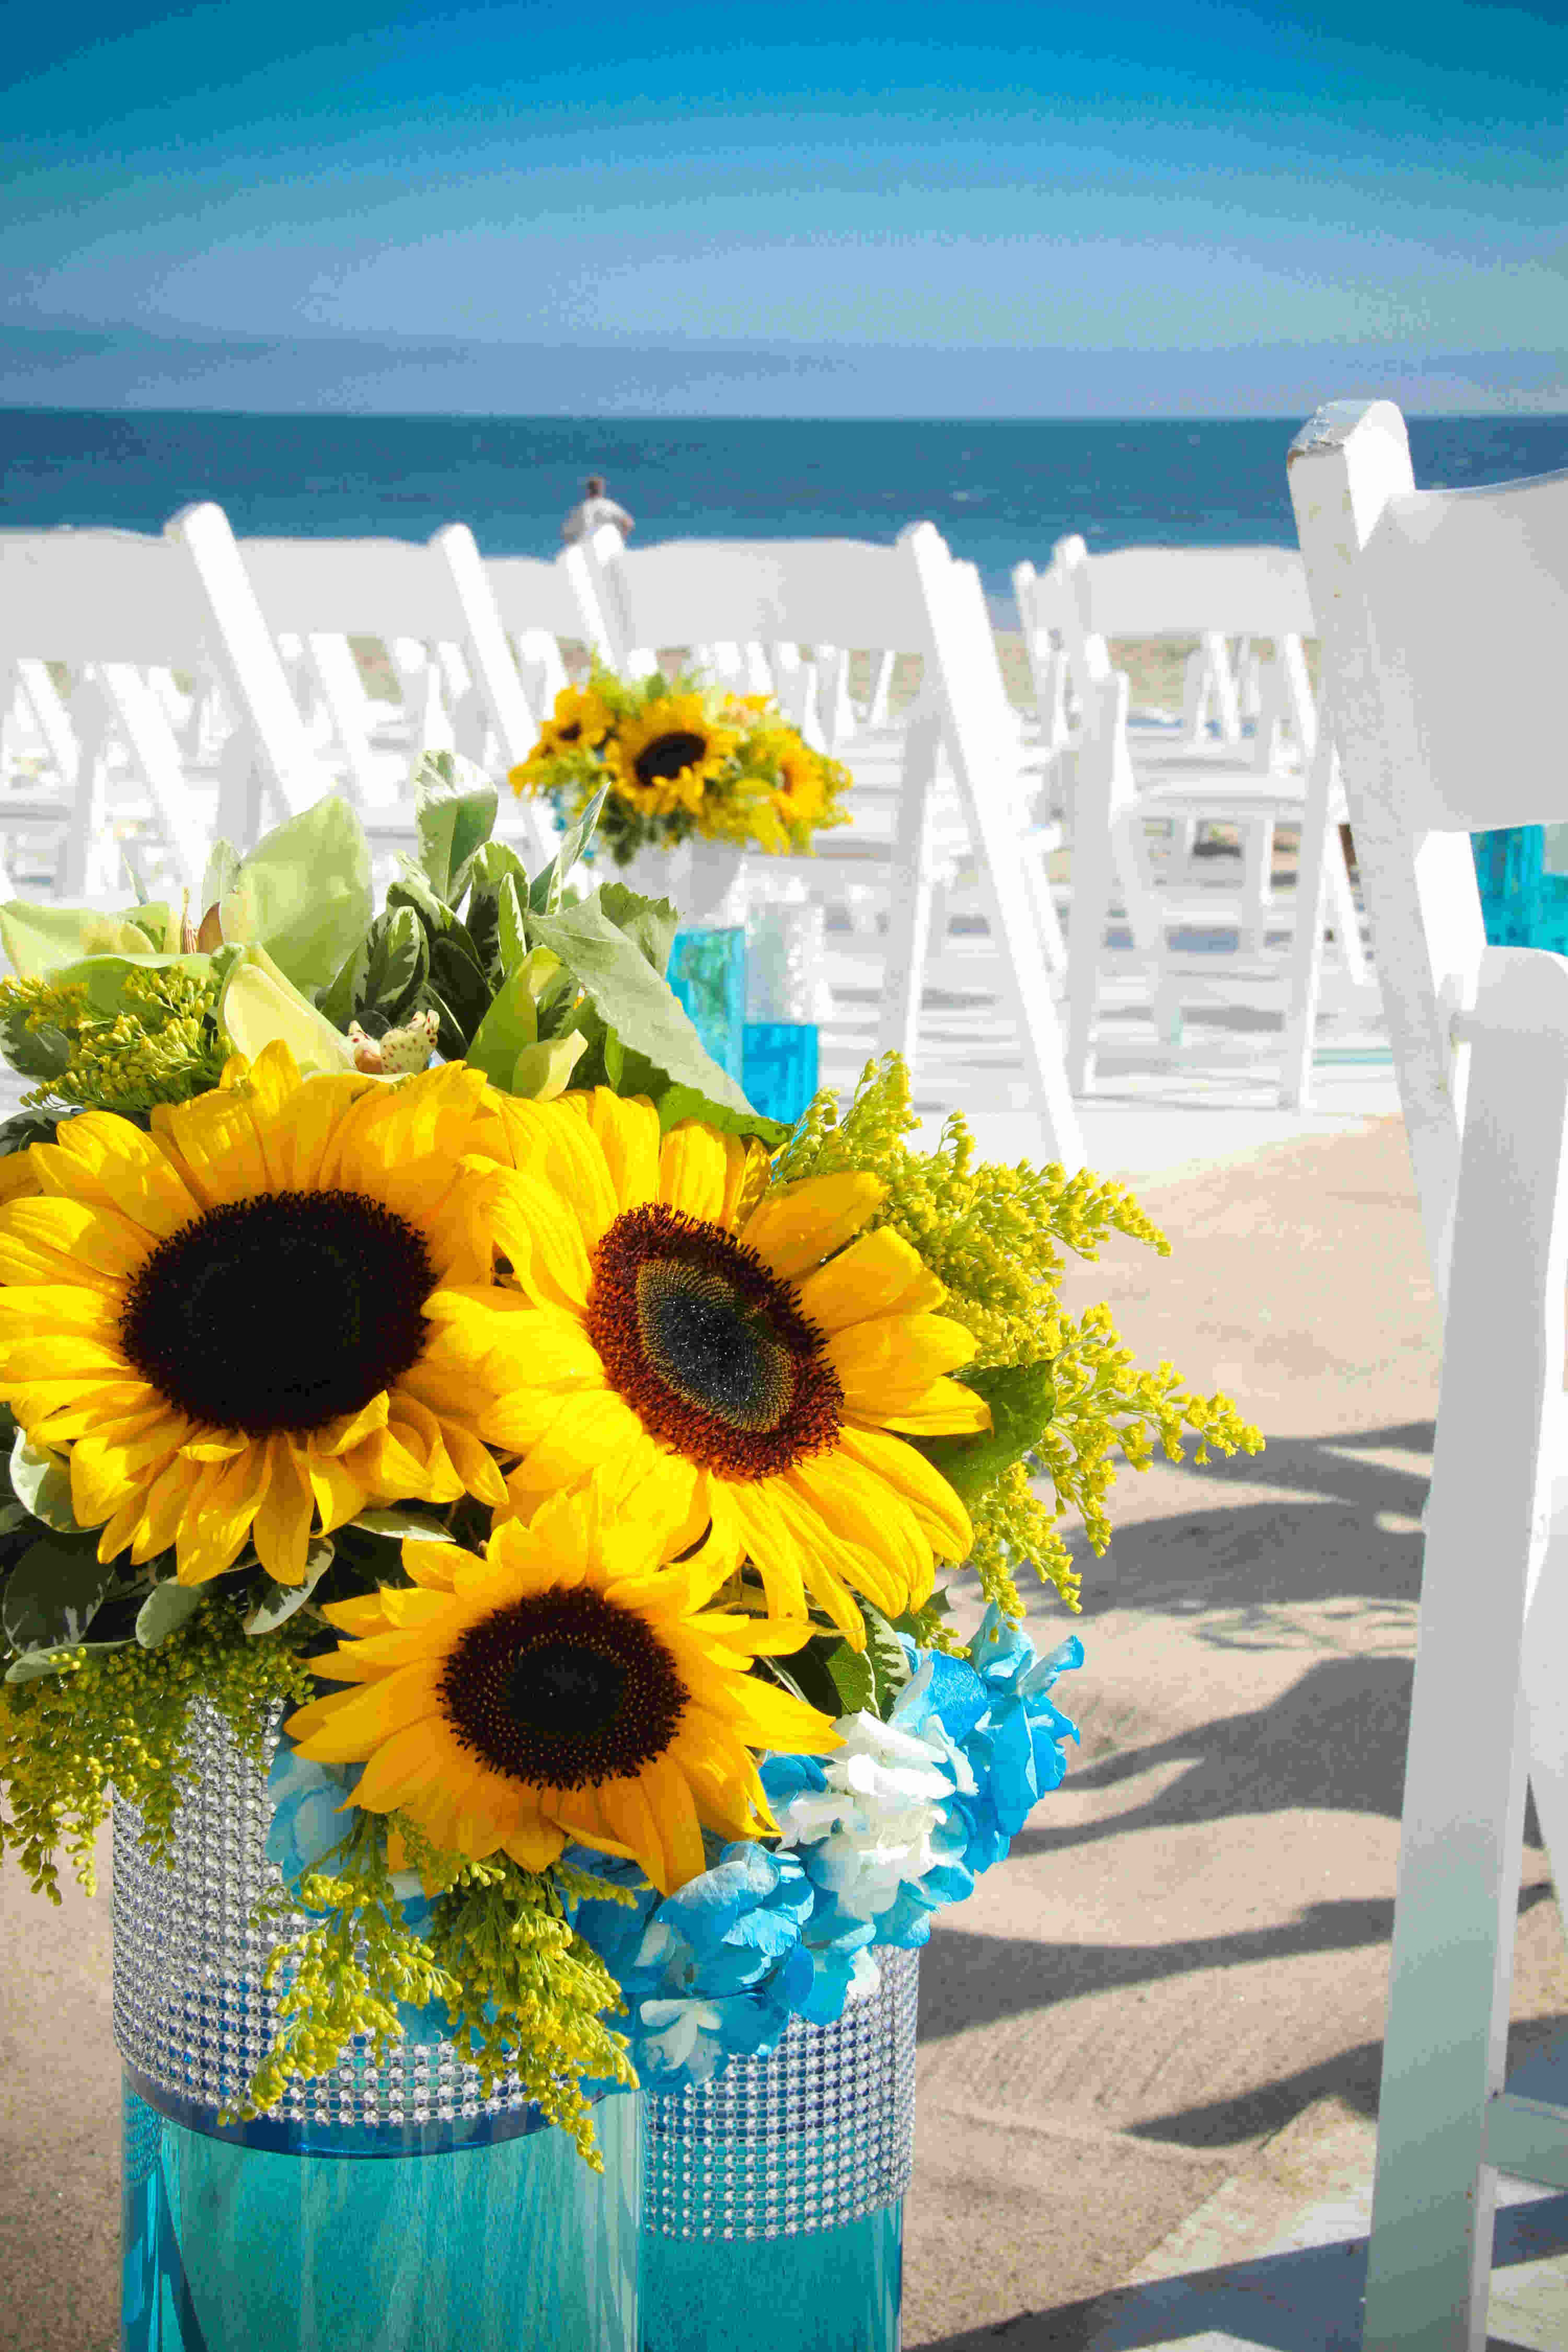 Ceremony, Flowers & Decor, yellow, blue, Beach, Ceremony Flowers, Aisle Decor, Flowers, Beach Wedding Flowers & Decor, Sunflowers, Aisle